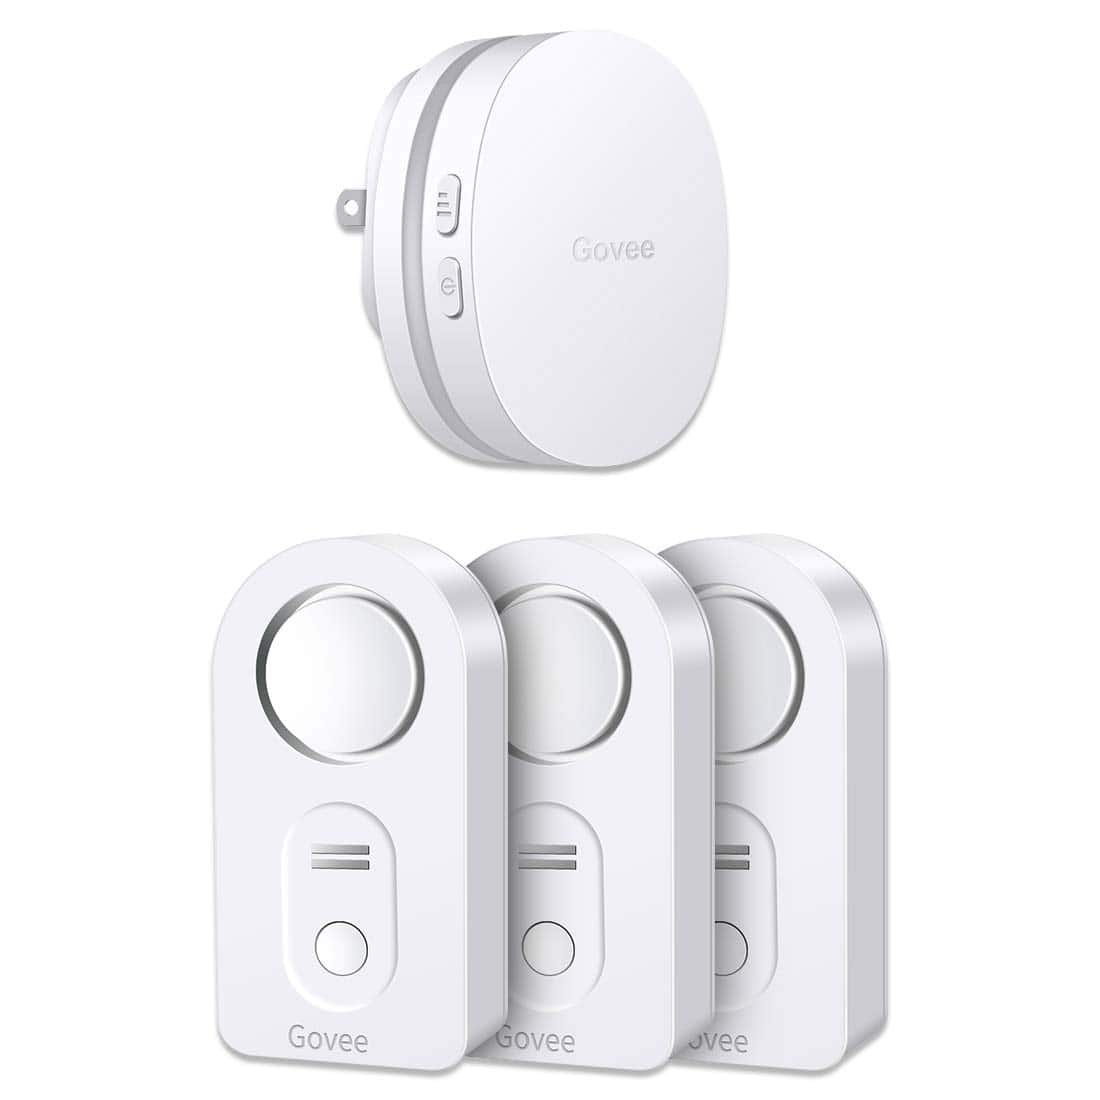 Govee WiFi Water Leak Detector - Base + 3 Sensors - $20.60 on Amazon AC - Free Shipping with Prime